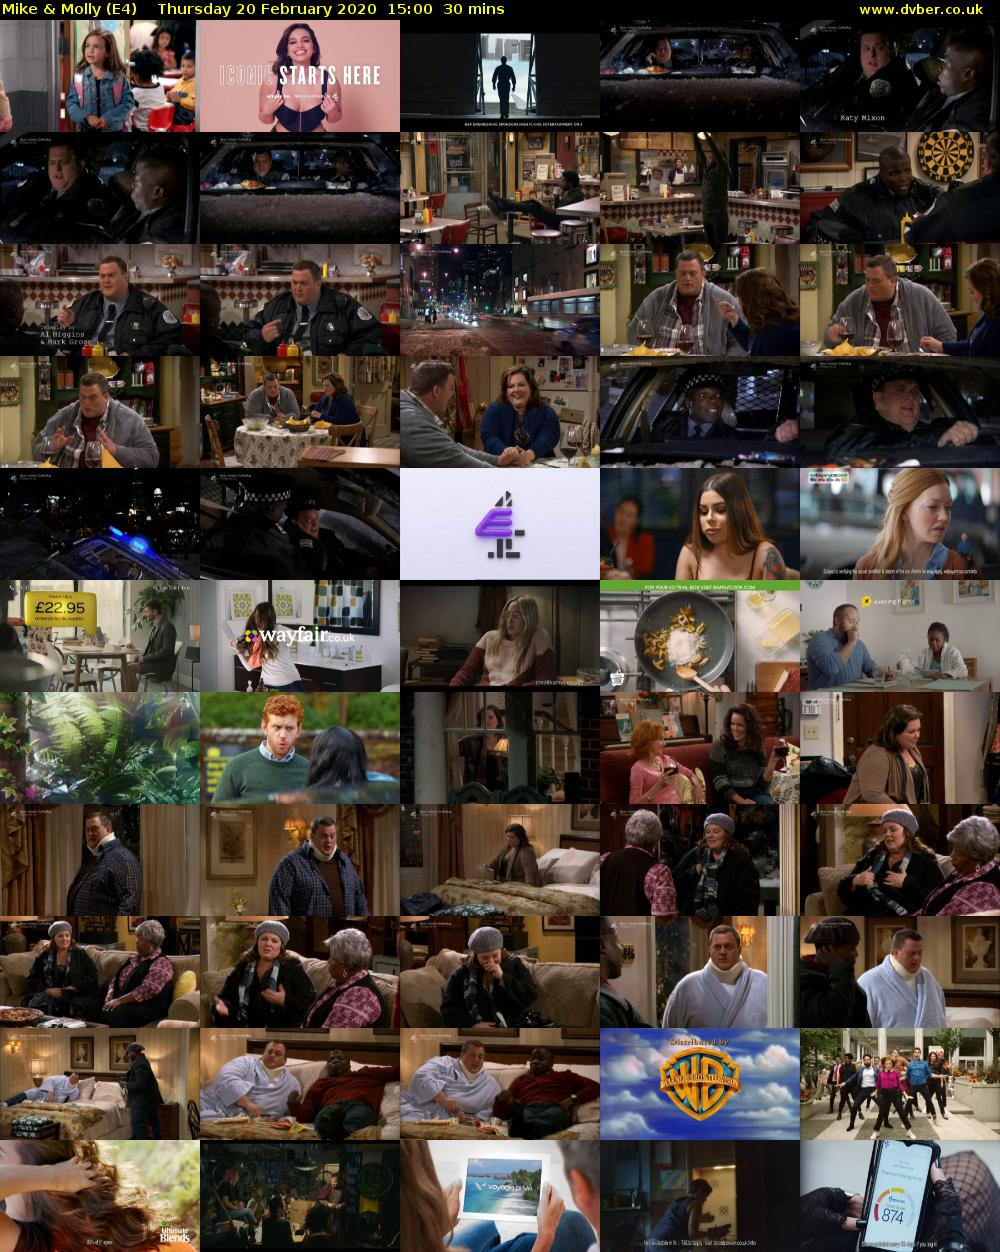 Mike & Molly (E4) Thursday 20 February 2020 15:00 - 15:30